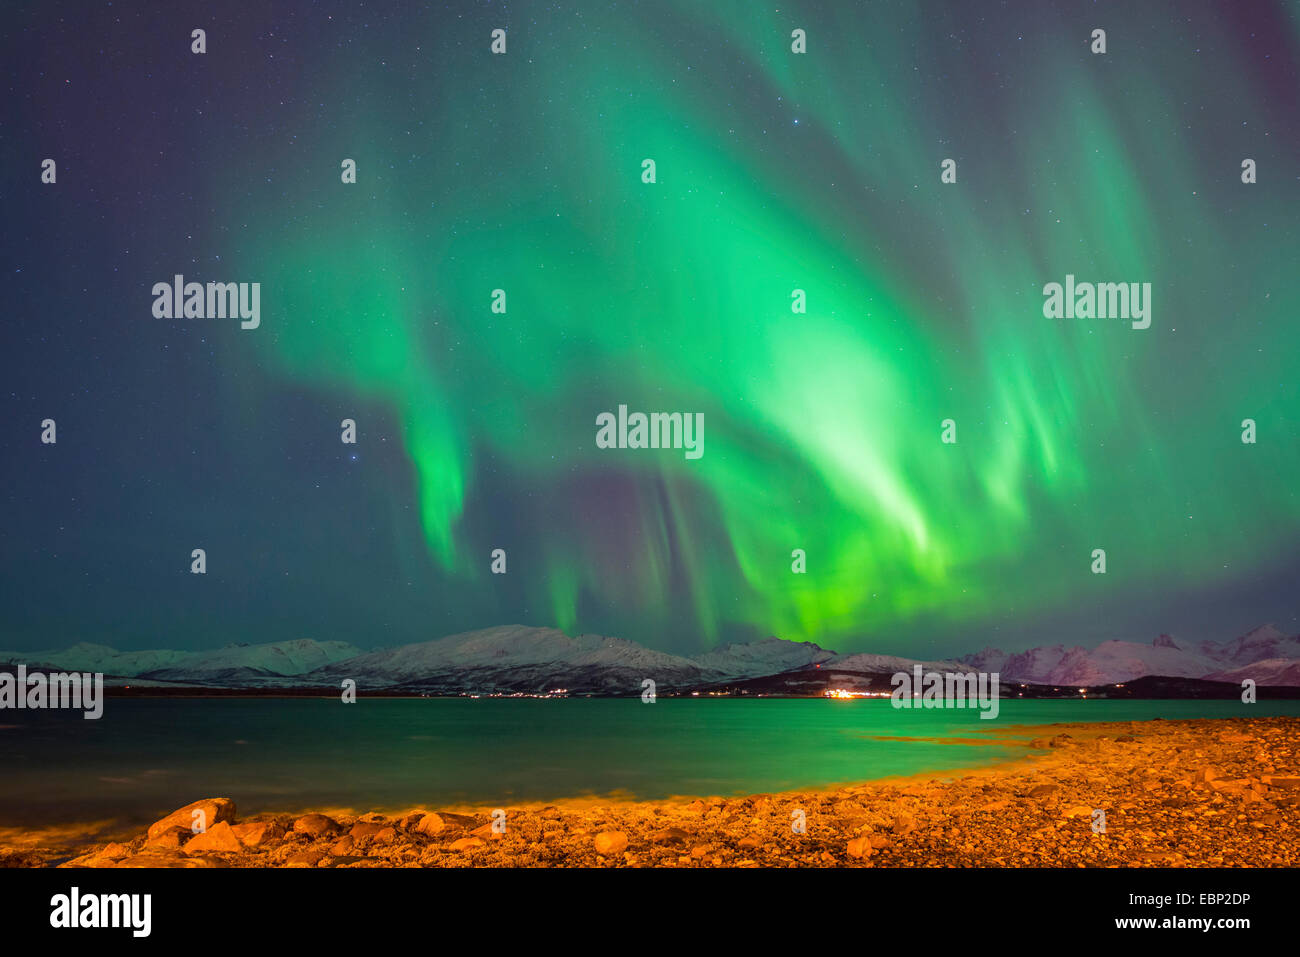 norther lights above Kvaloeya, Norway, Troms, Tromsoe, Sandnessund - Stock Image